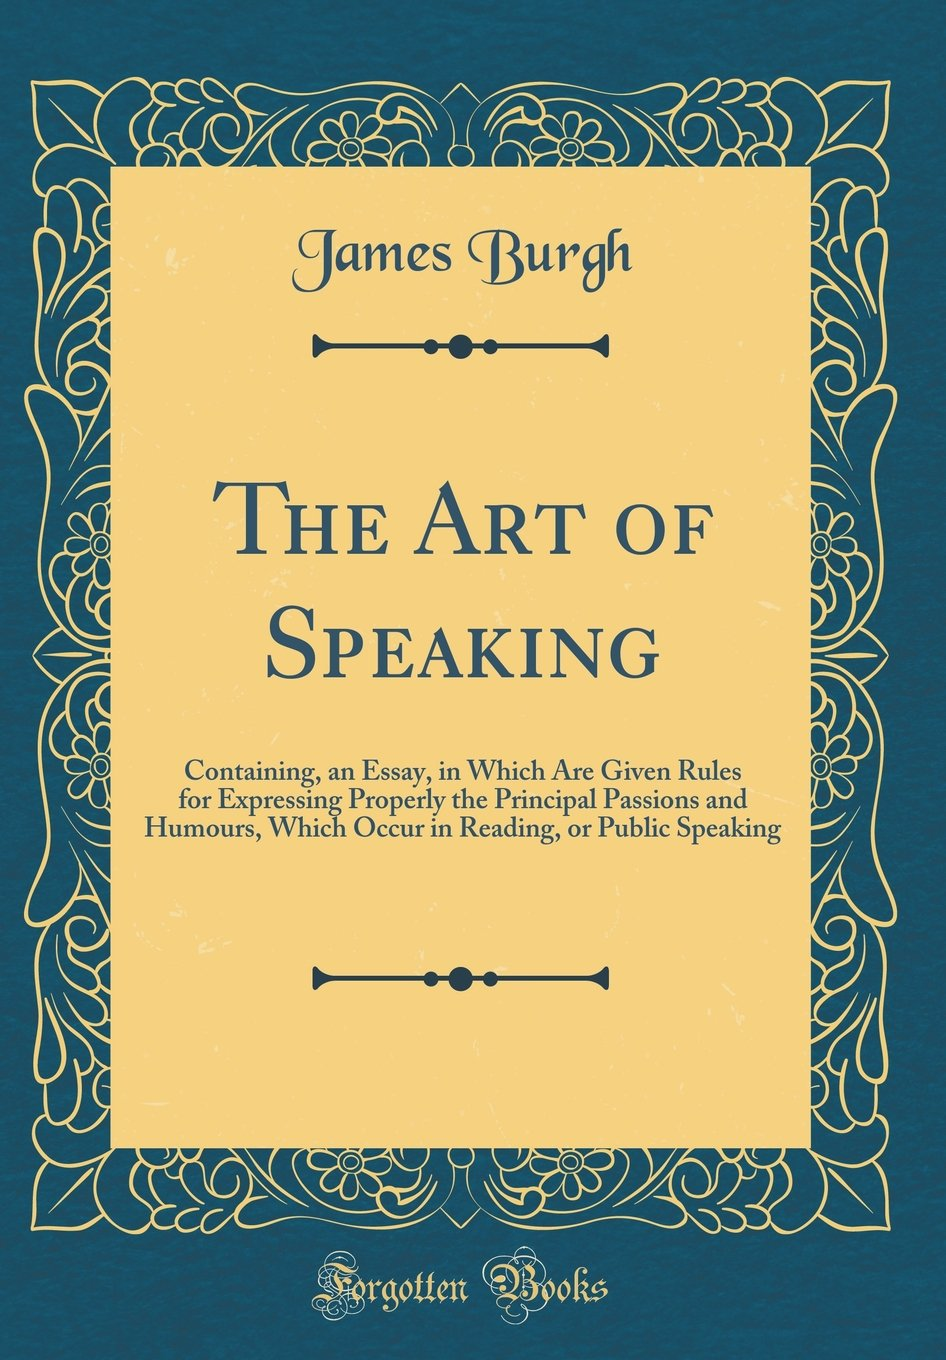 art of speaking essay